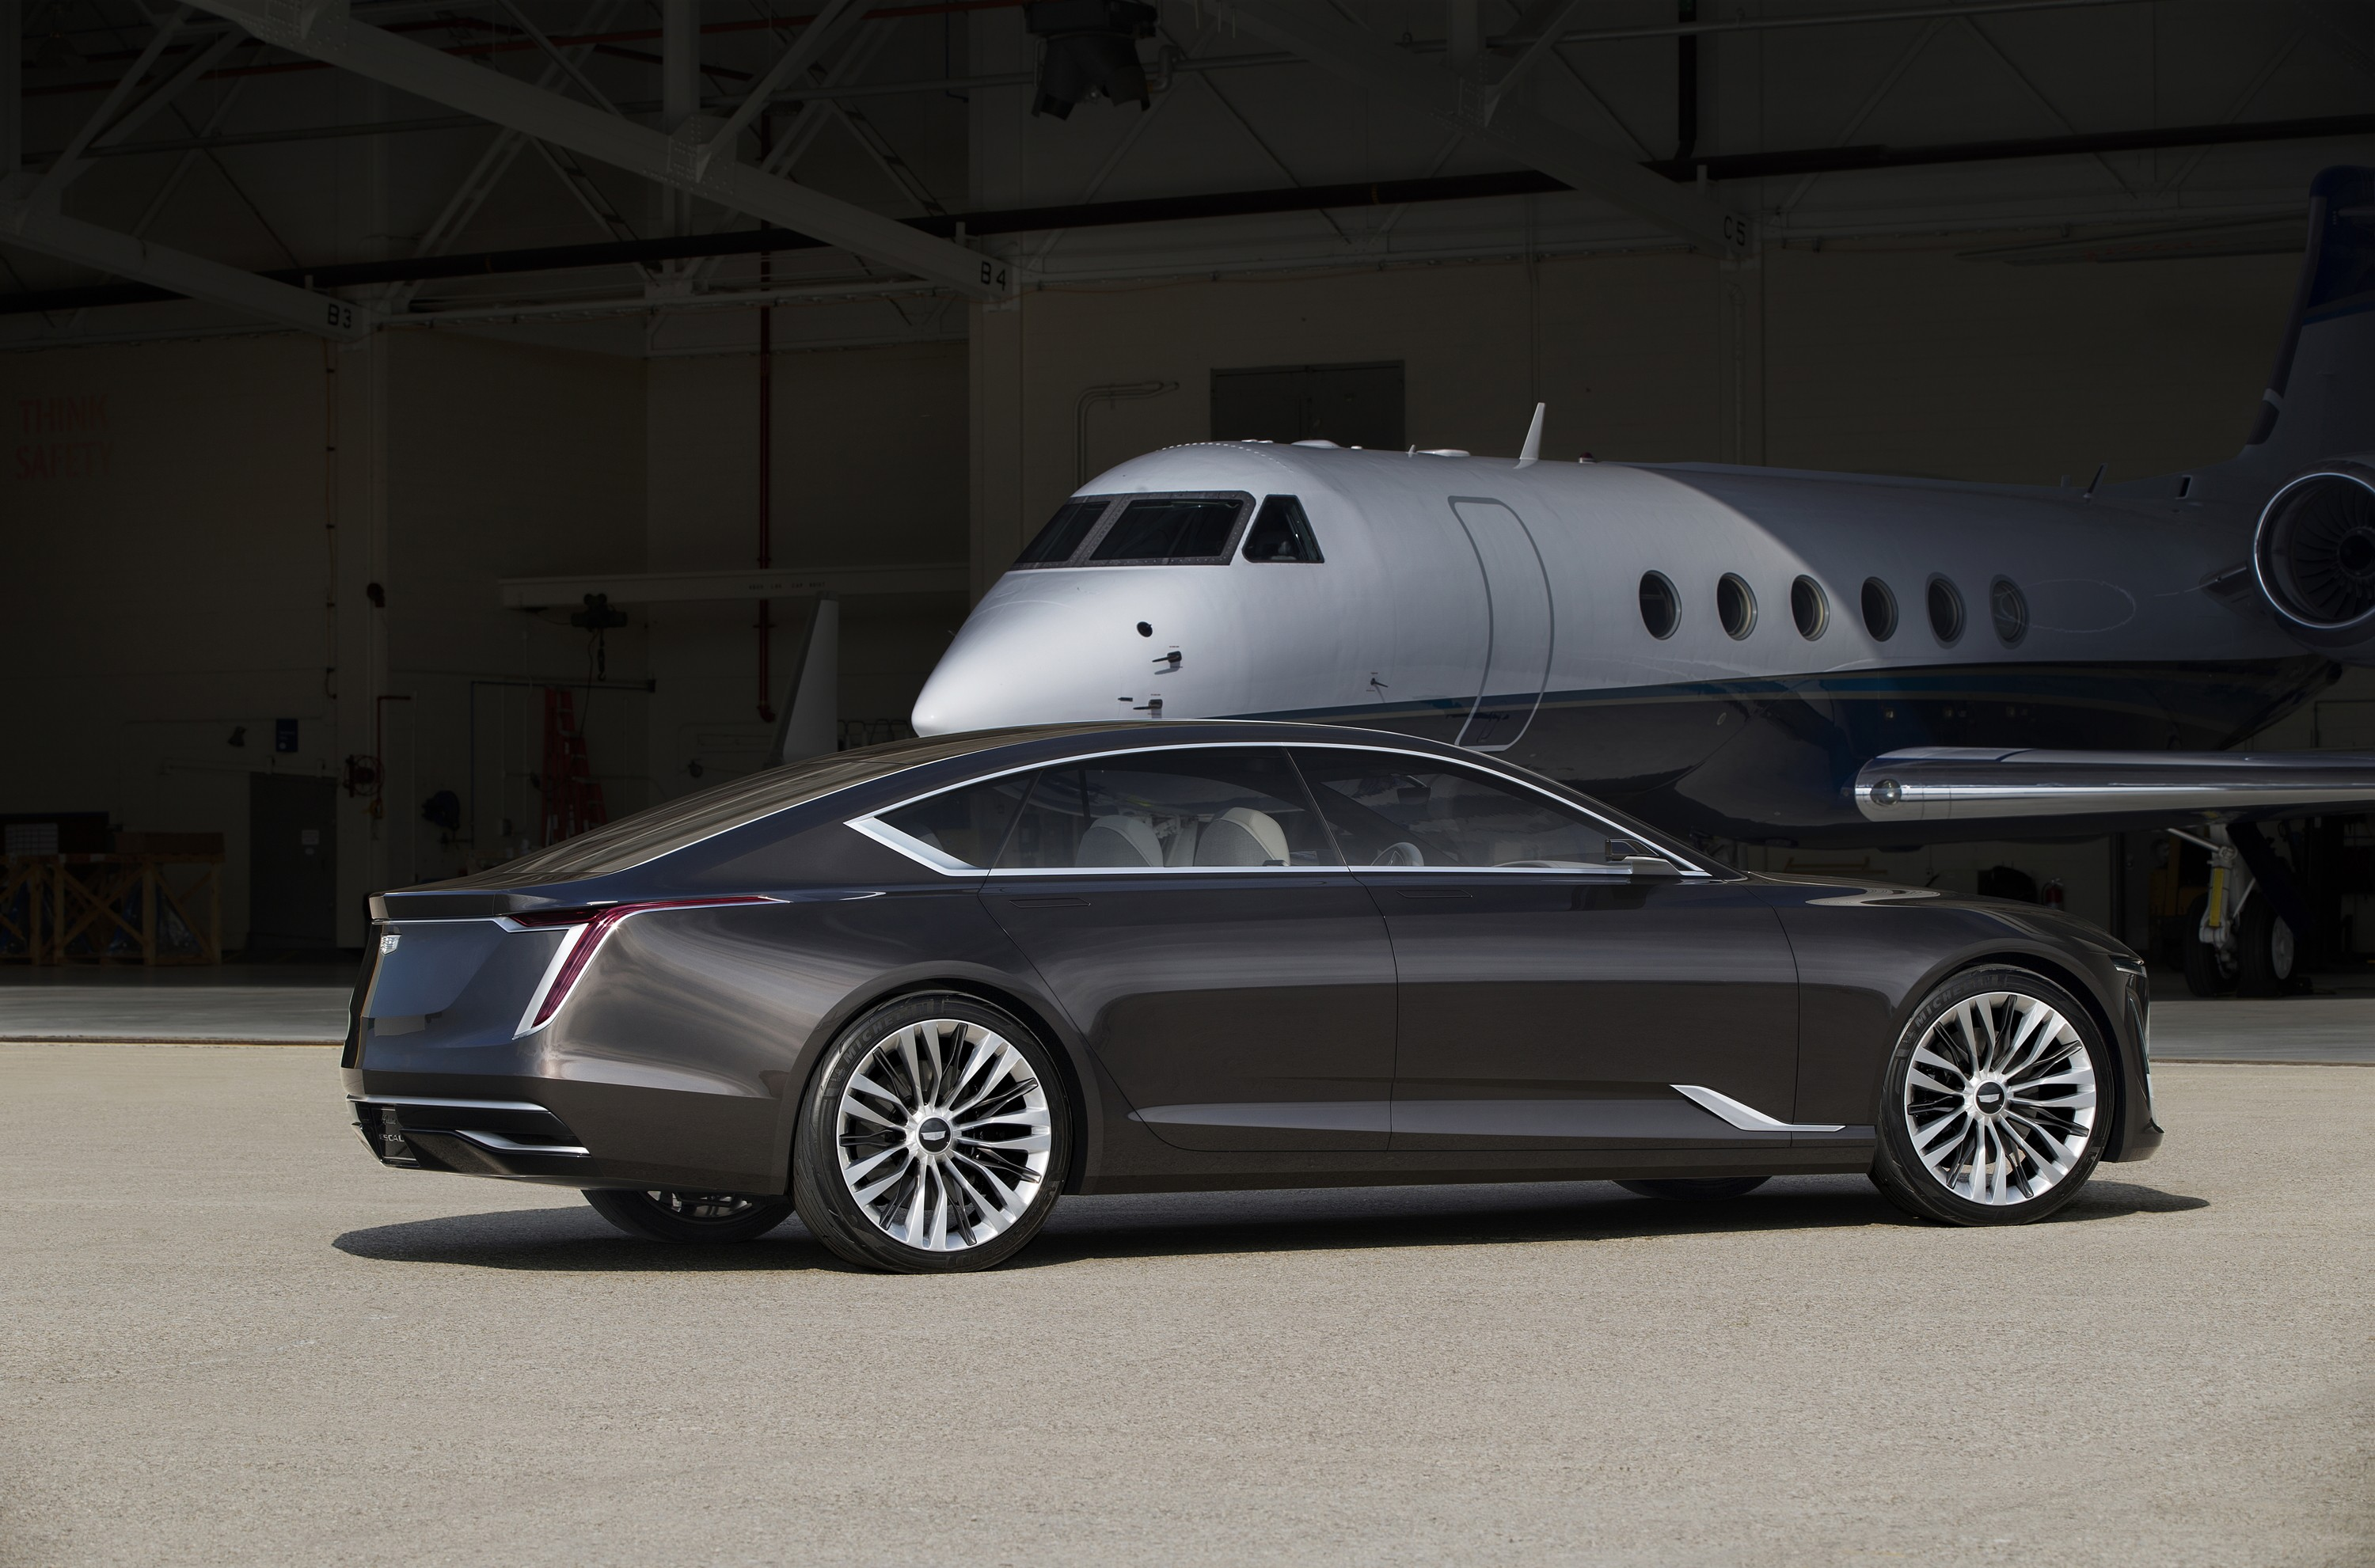 46 New 2020 Candillac Xts New Concept